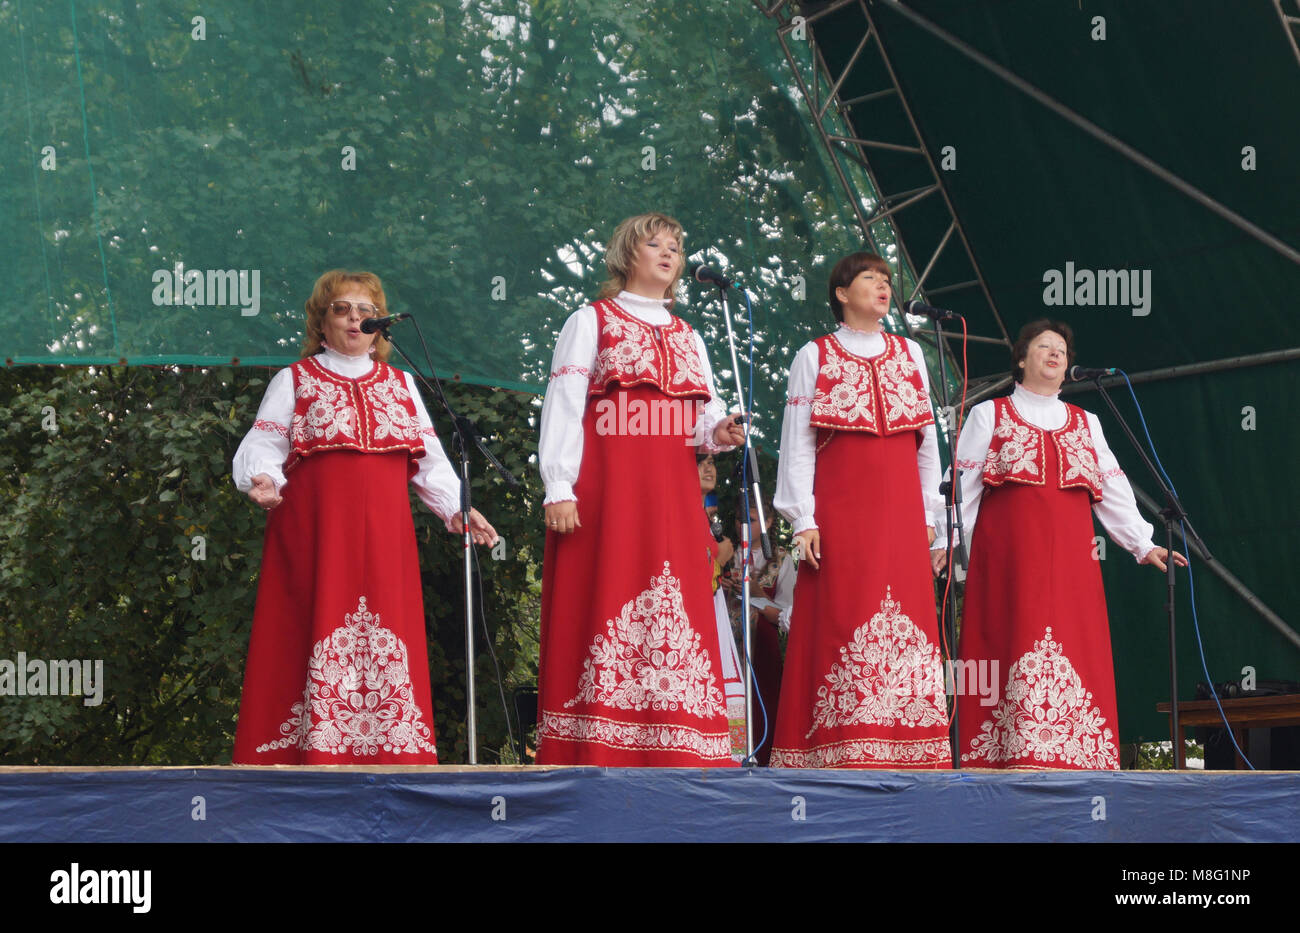 Mstyora,Russia-August 16,2014:Women(woman)s in national suit sing on scene - Stock Image